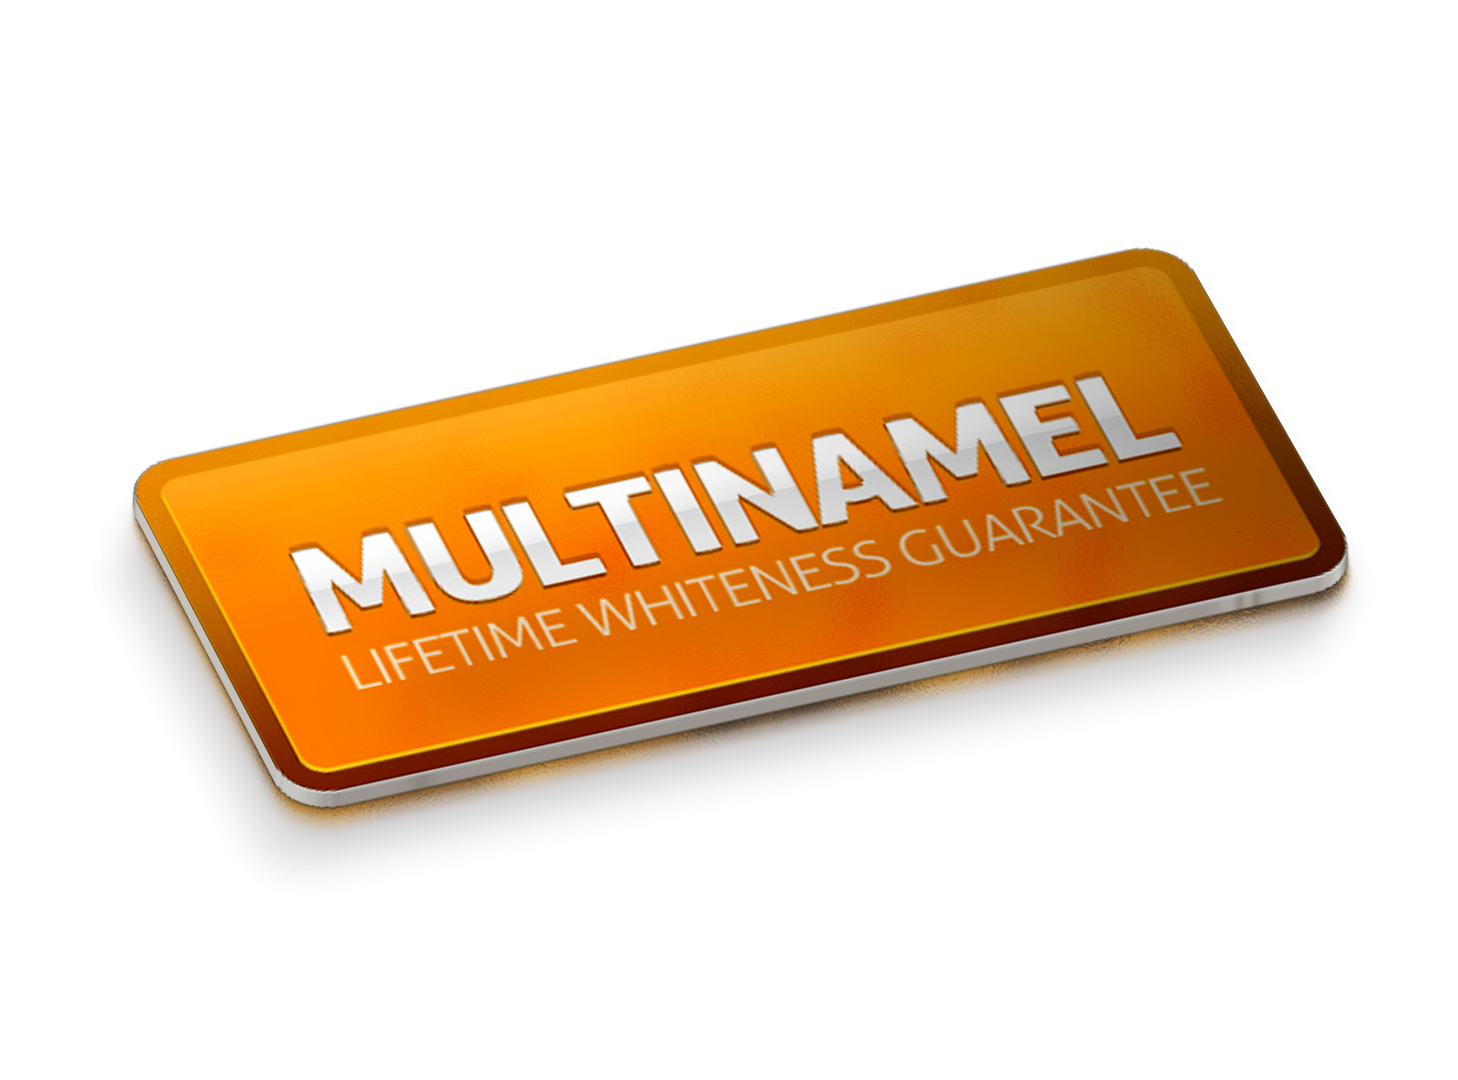 Bath reglazing product Multinamel logo